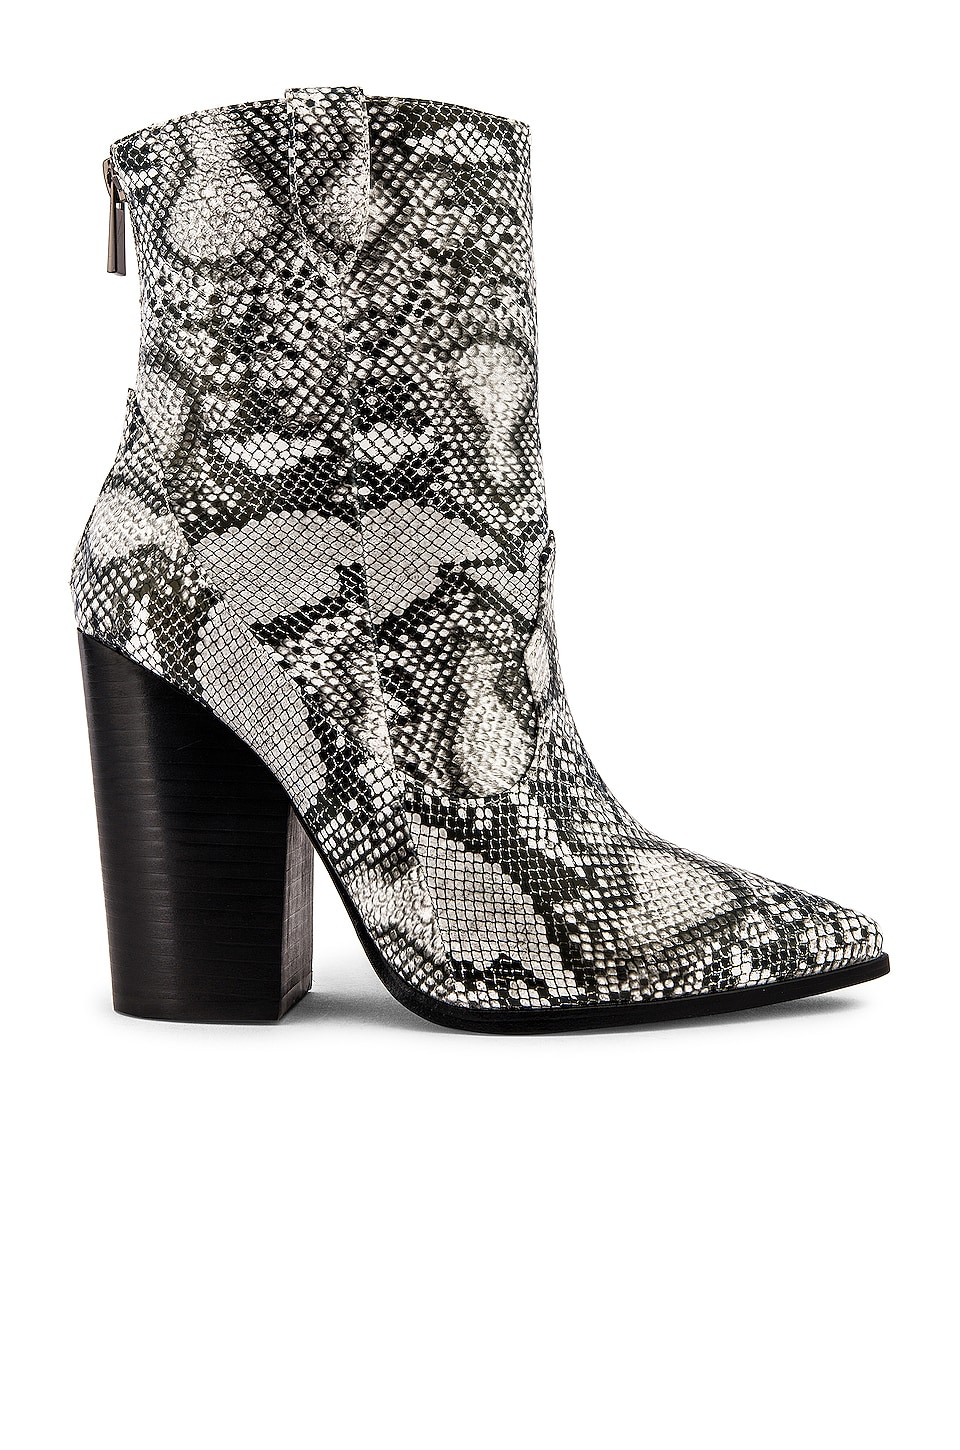 RAYE Leon Boot in Black & White